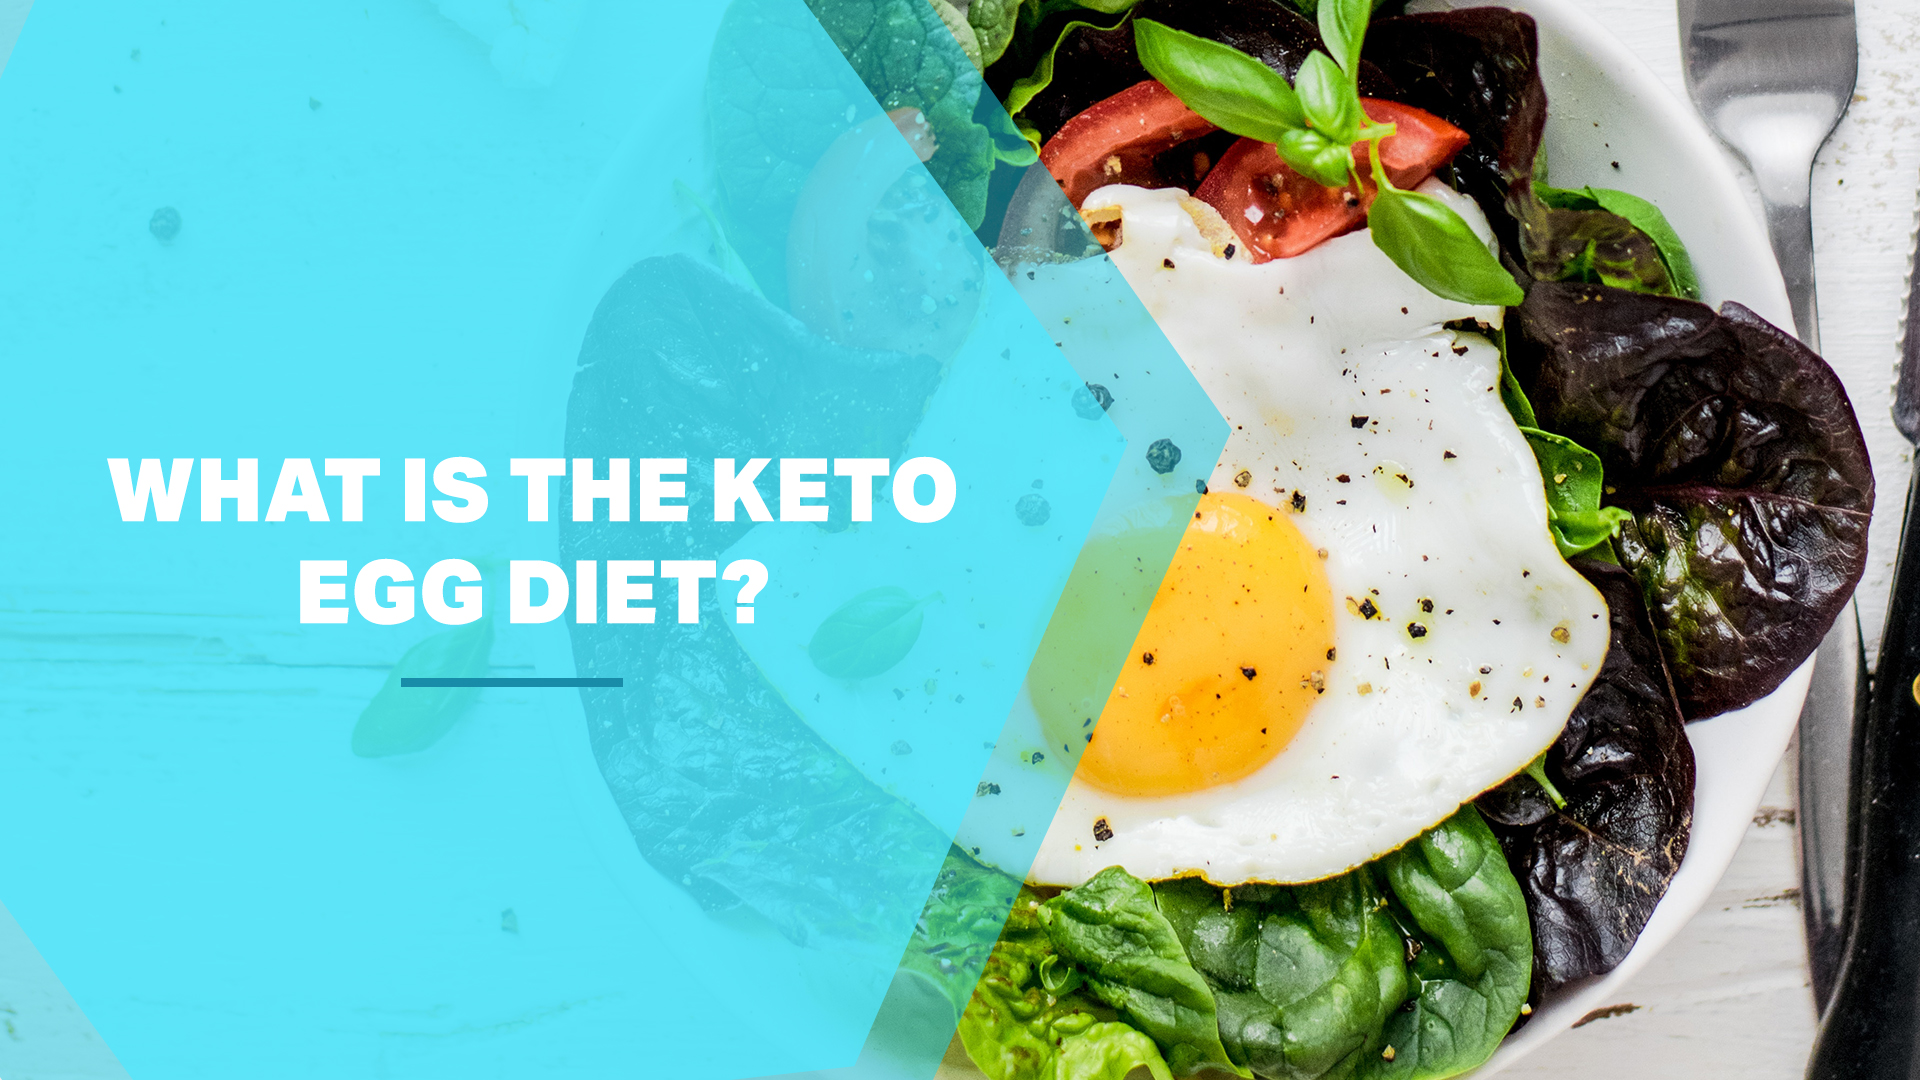 What Is The Keto Egg Diet?